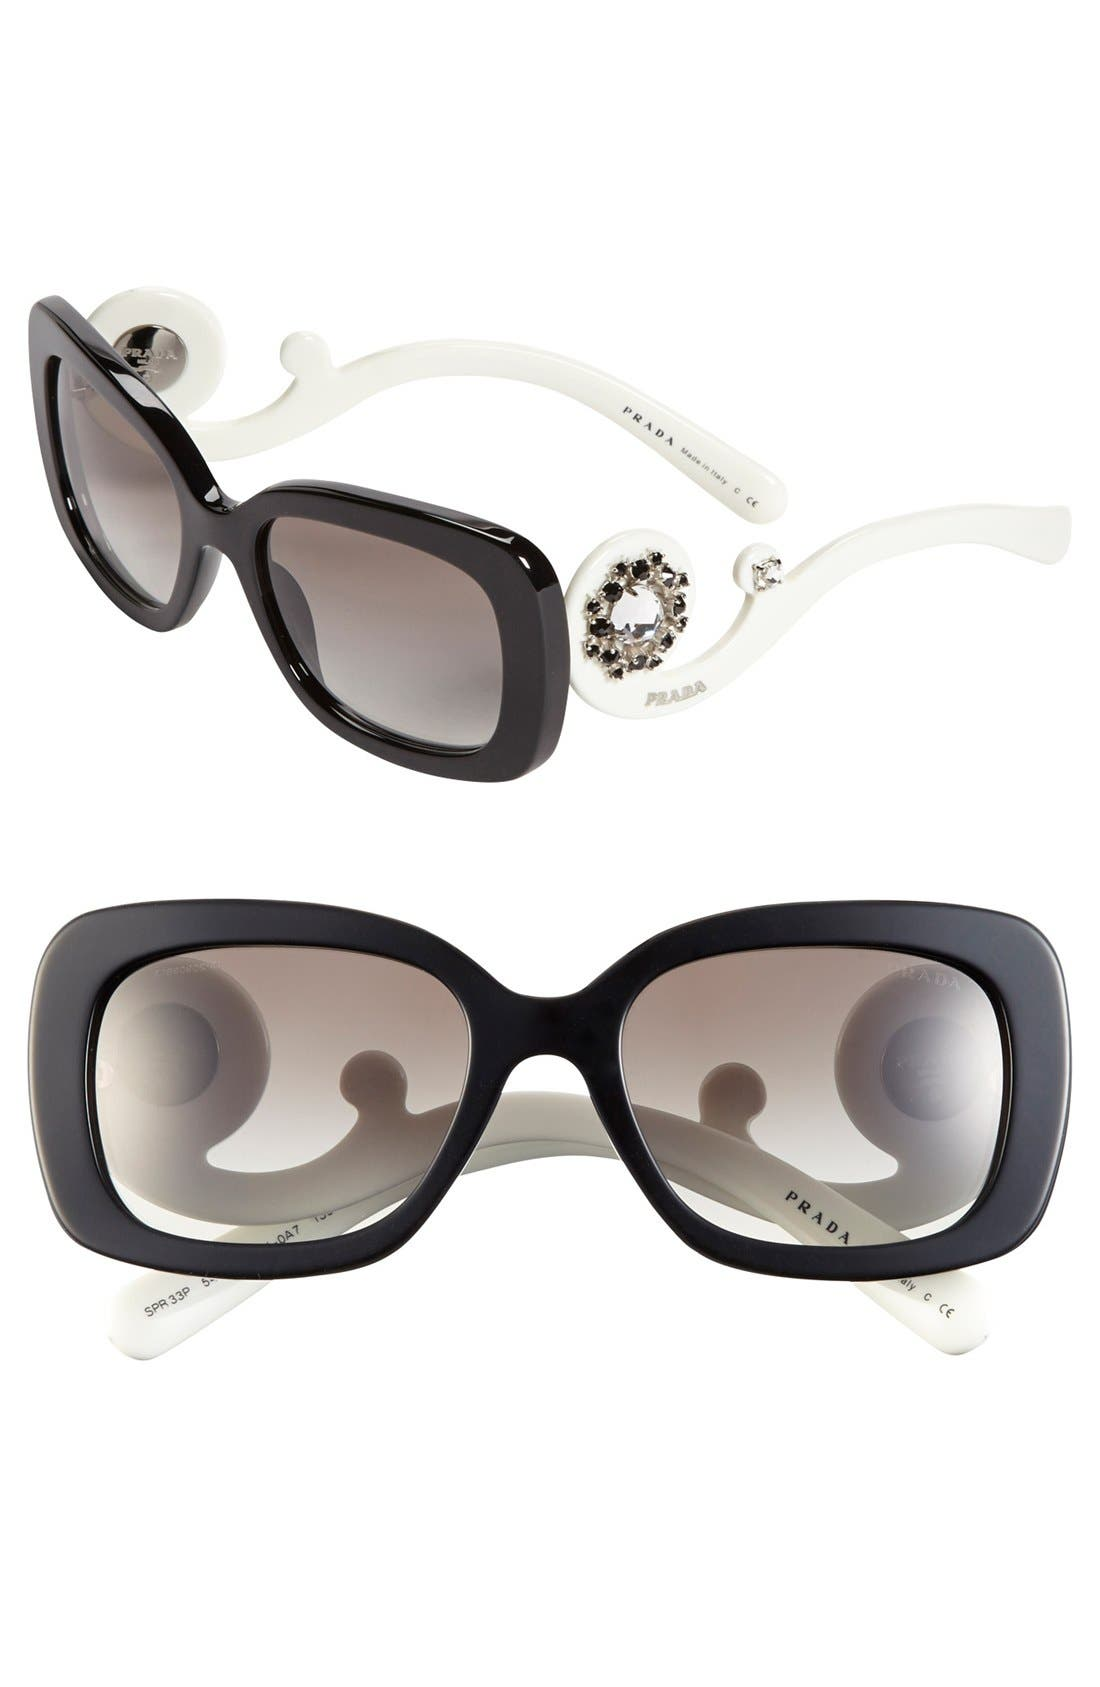 Alternate Image 1 Selected - Prada 54mm Polarized Sunglasses